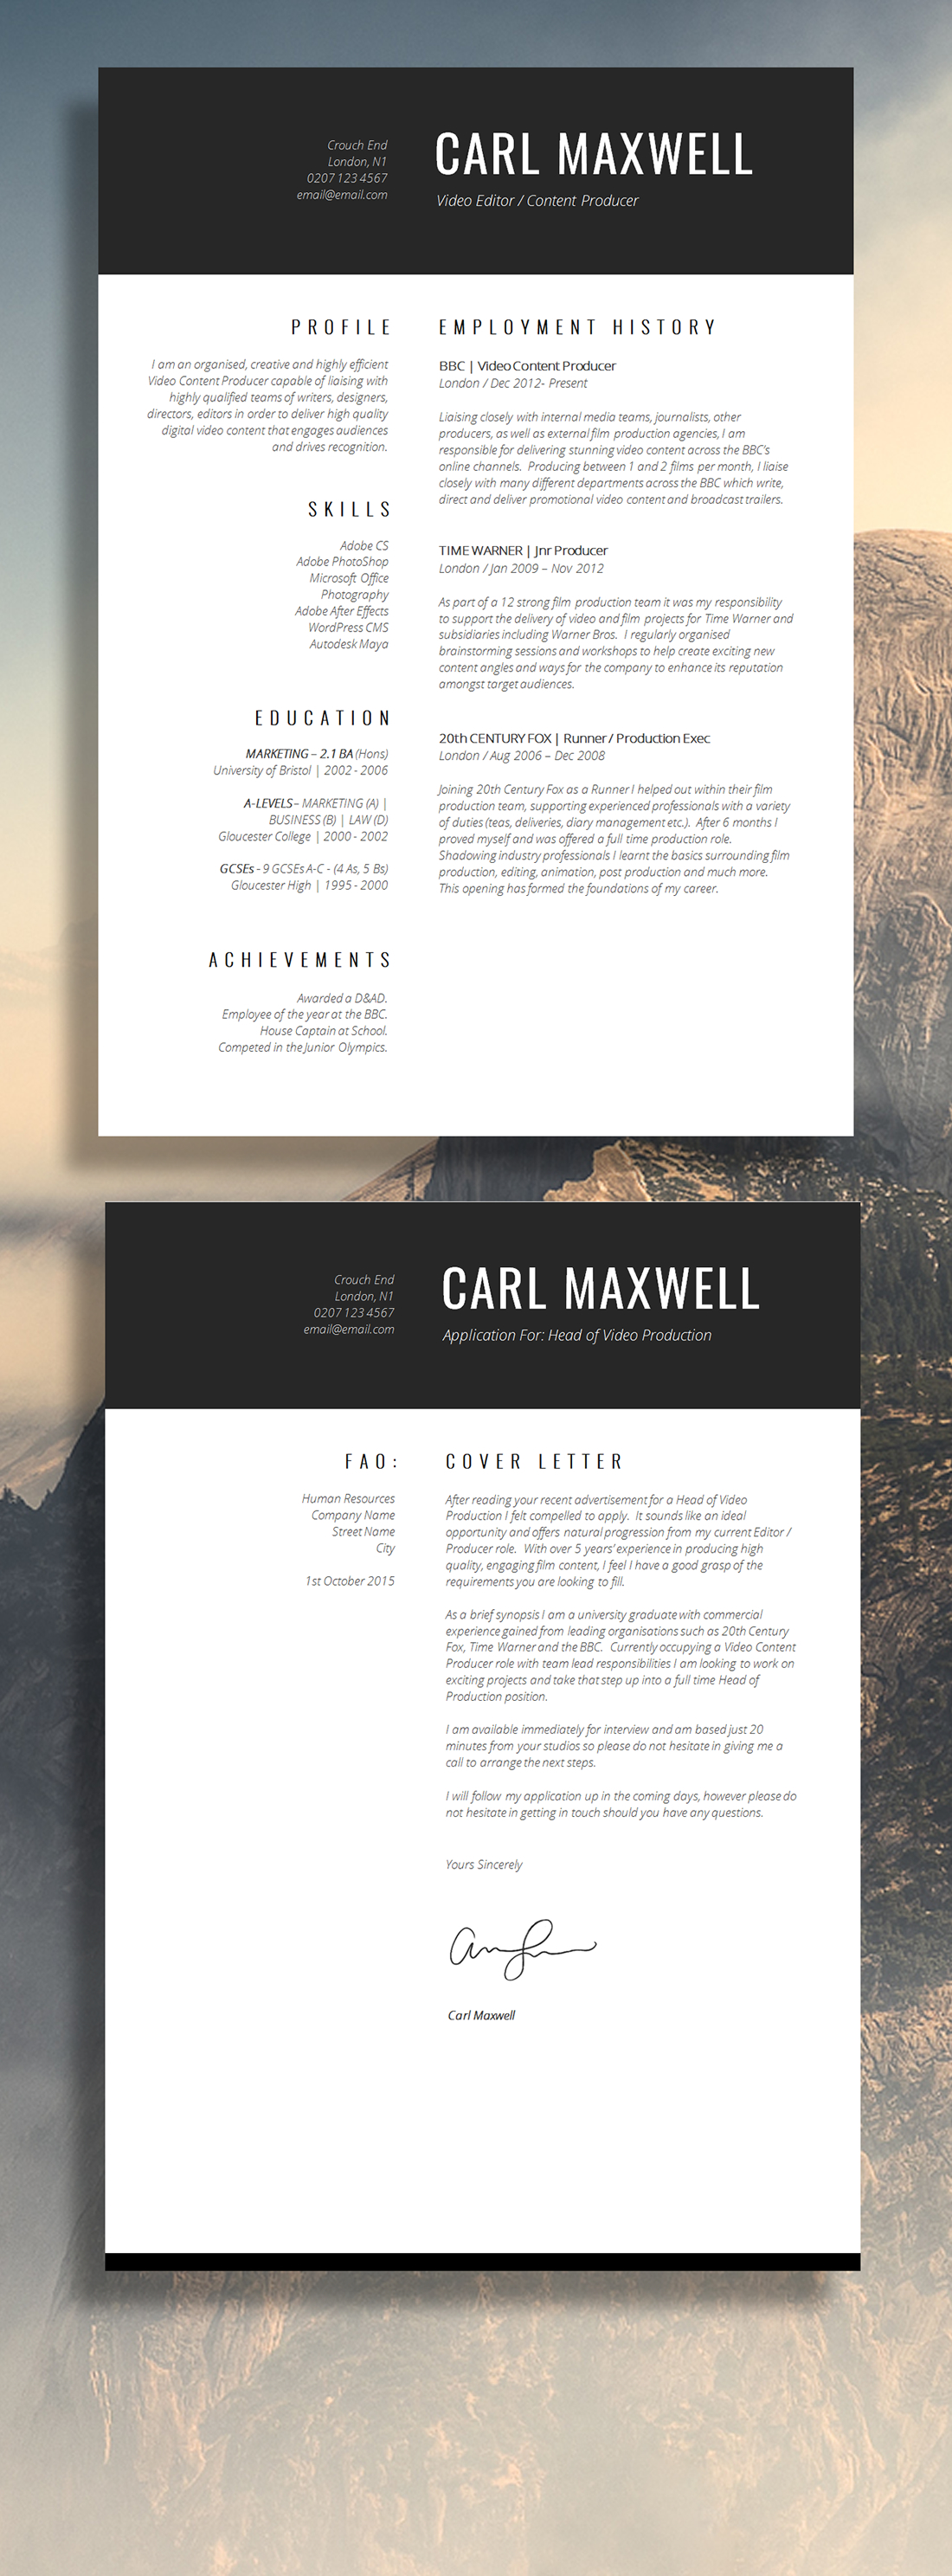 Brilliant Resume Templates That YouLl Want To Steal   Guru Jobs